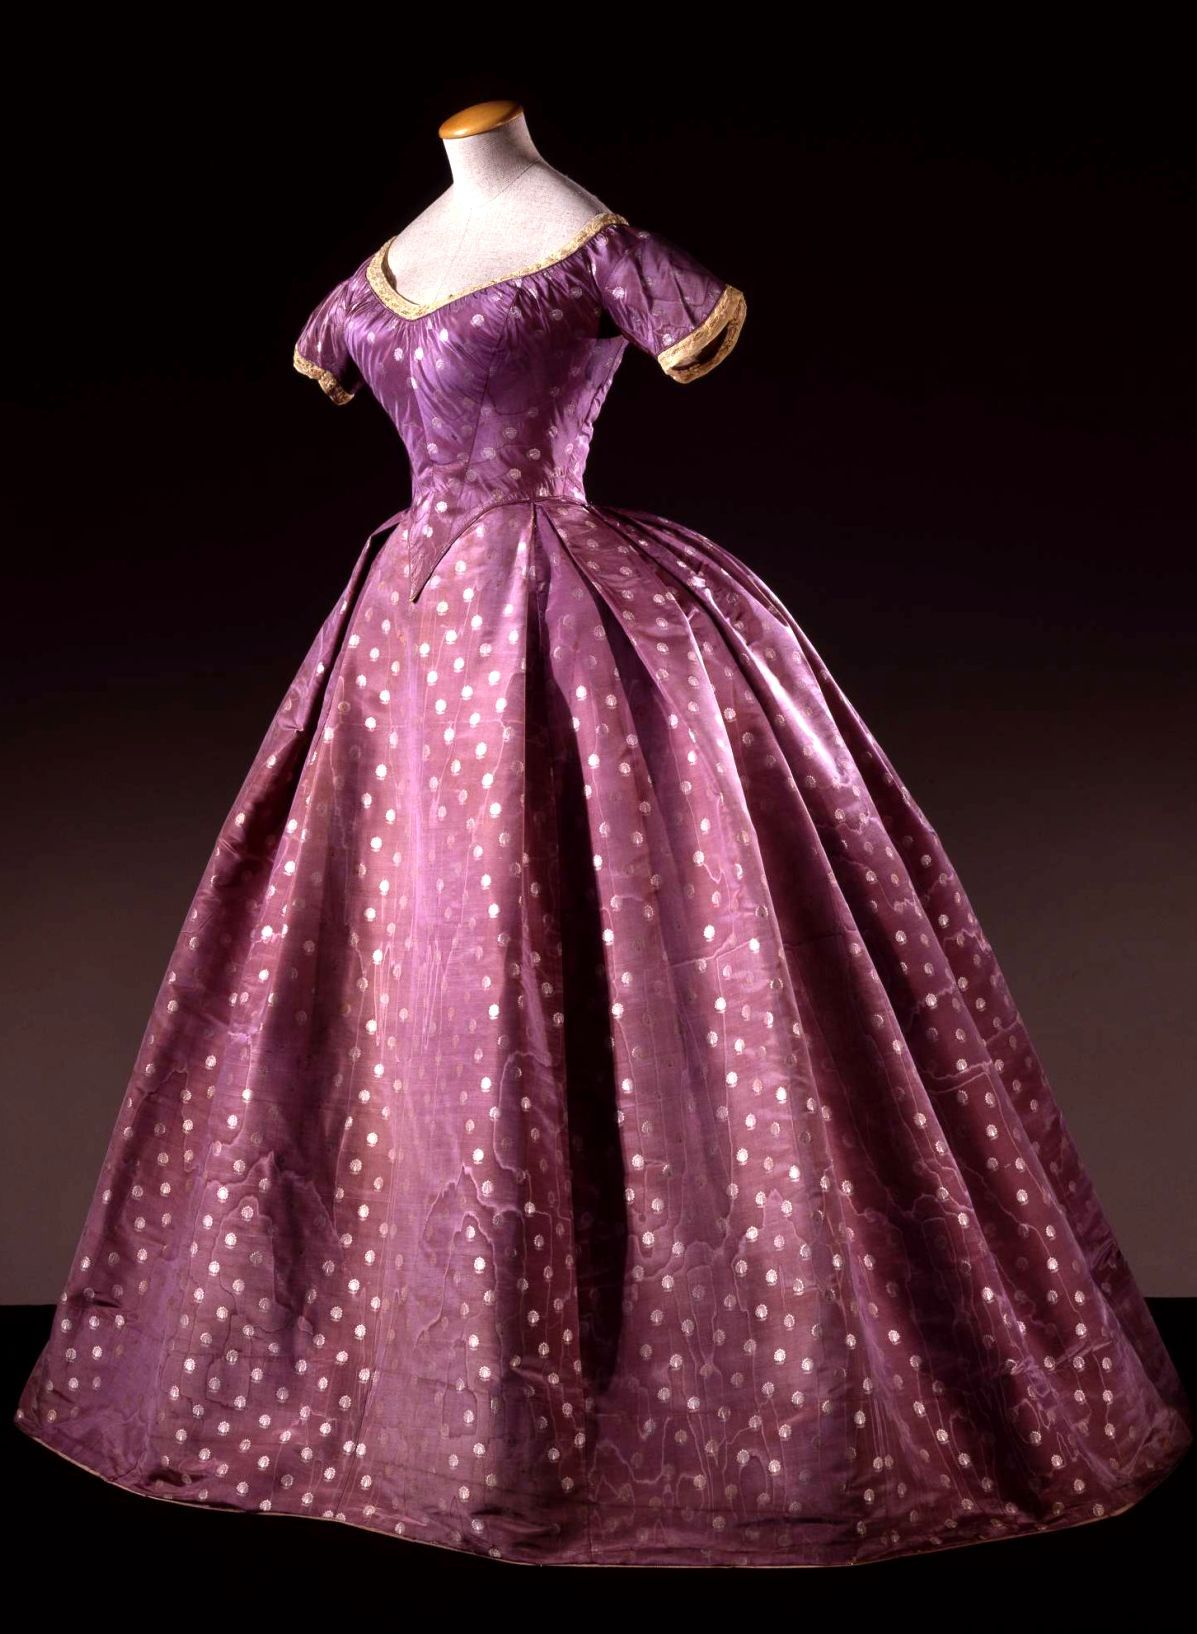 HISTORICAL PINK & PURPLE PRINTED DRESSES | HISTORICAL PINK & PURPLE ...